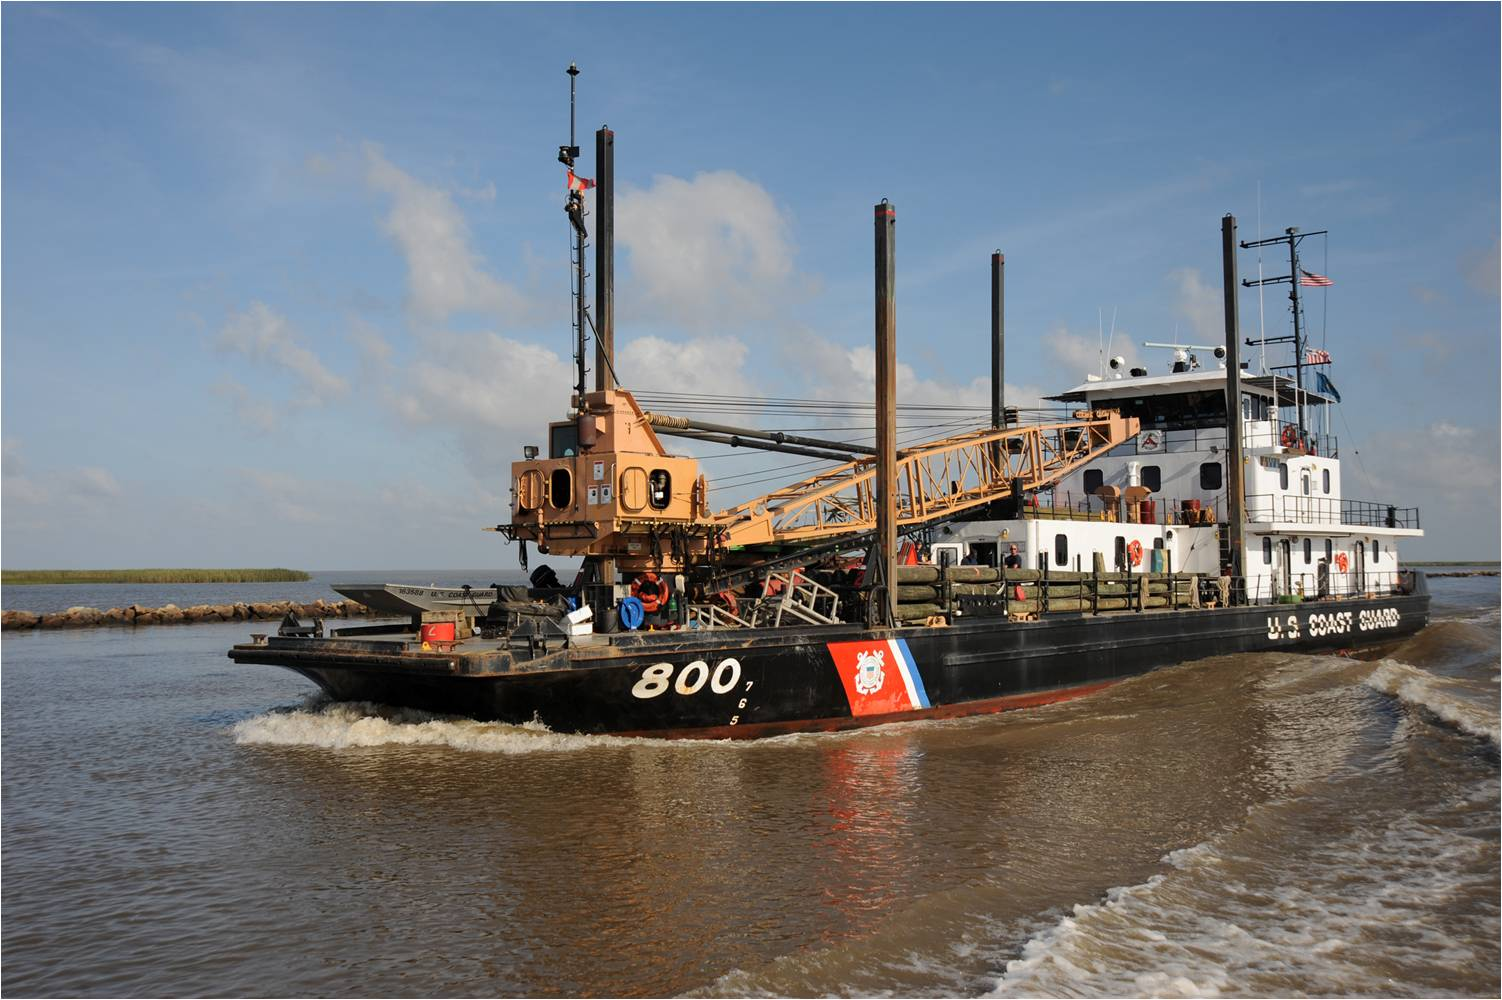 8th coast guard district headquartered in new orleans